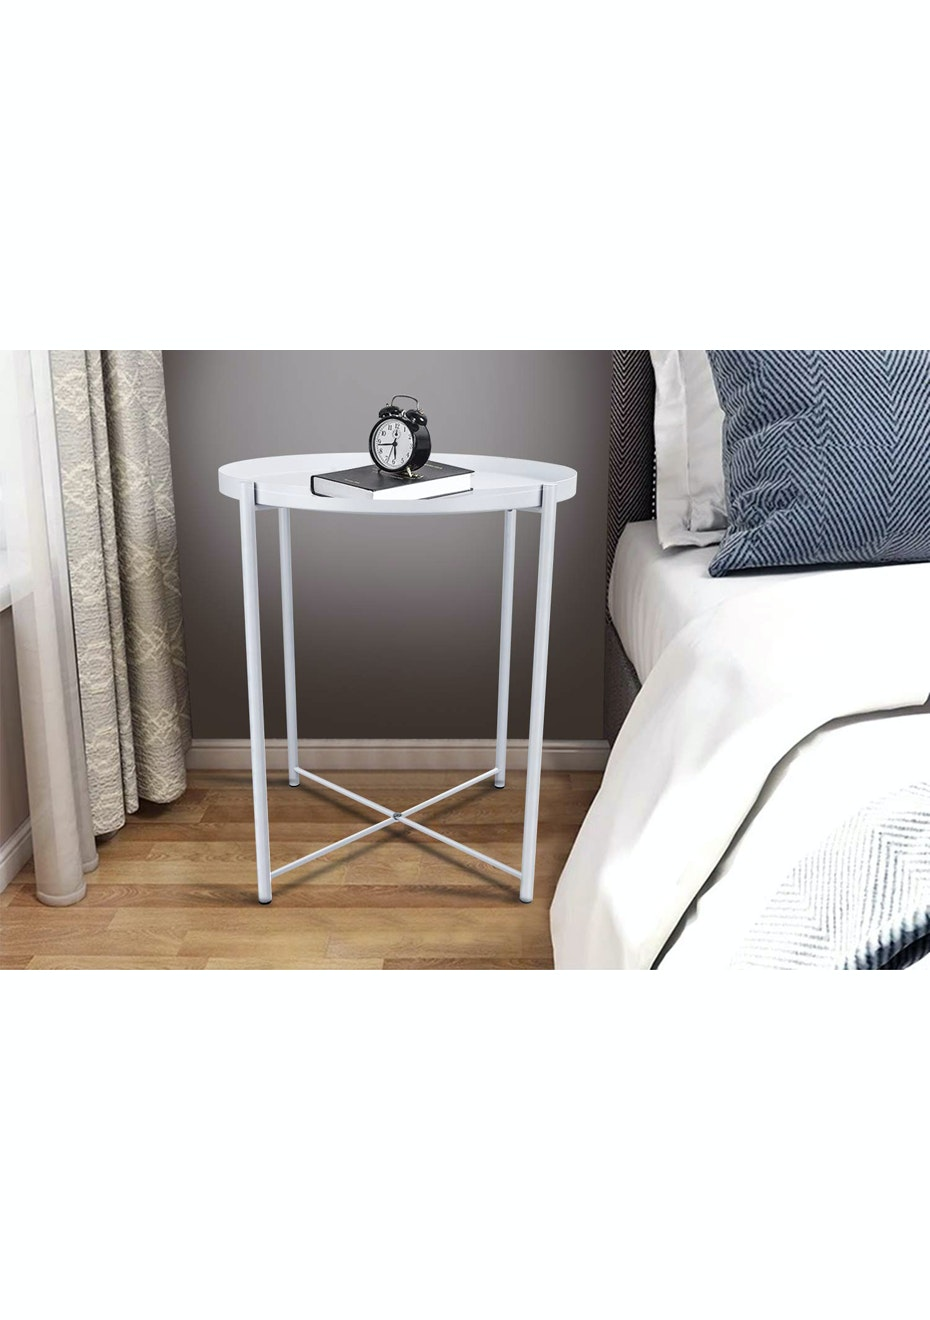 Minimalist Round Bedside Table With Removable Tray White